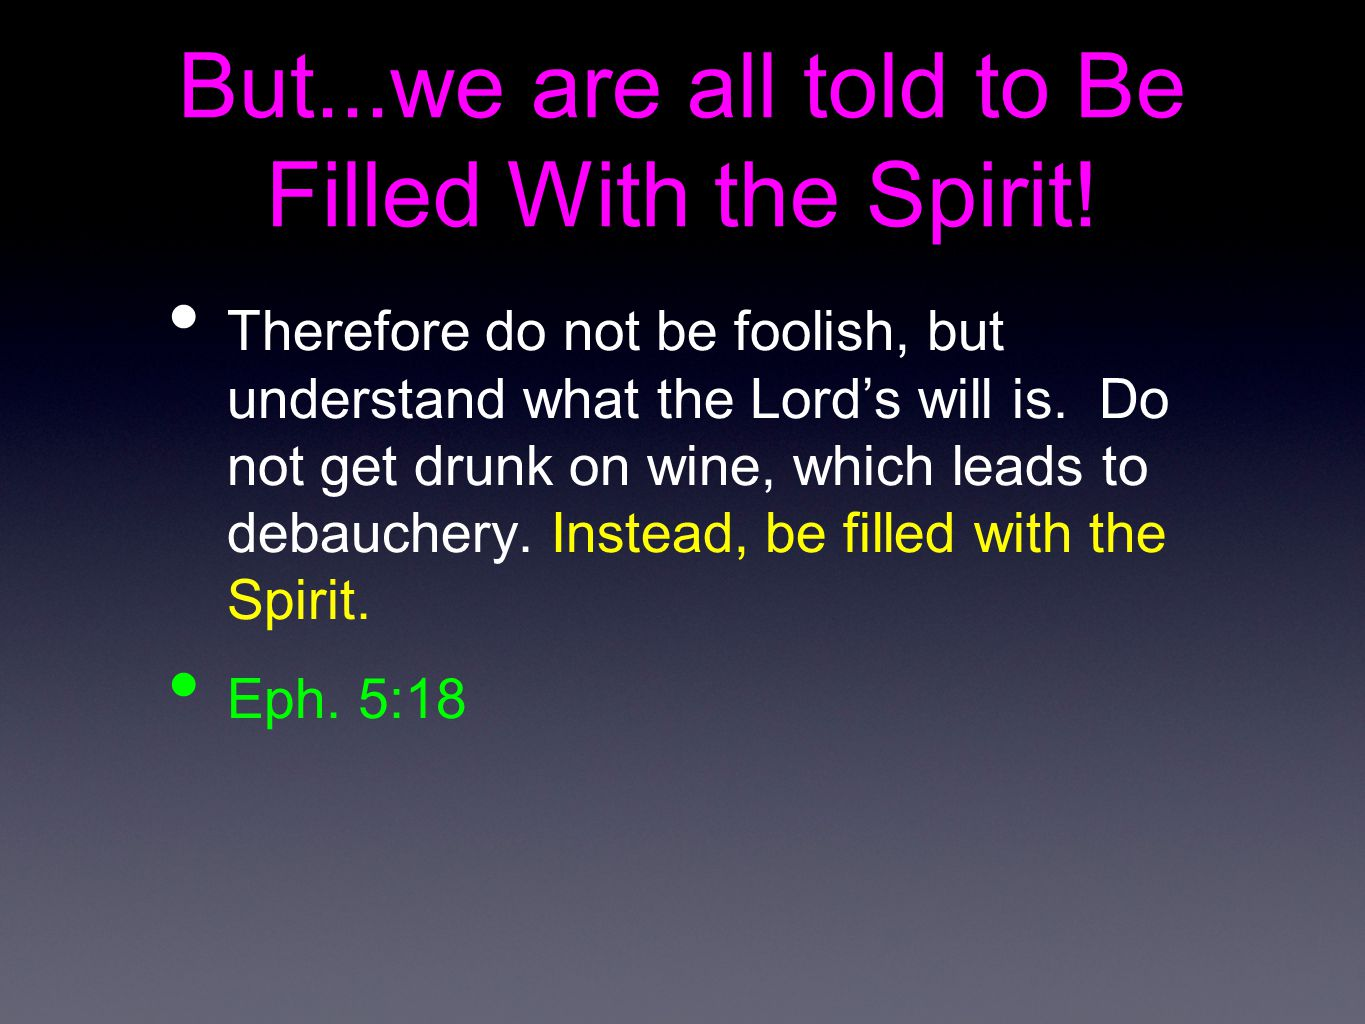 But...we are all told to Be Filled With the Spirit!